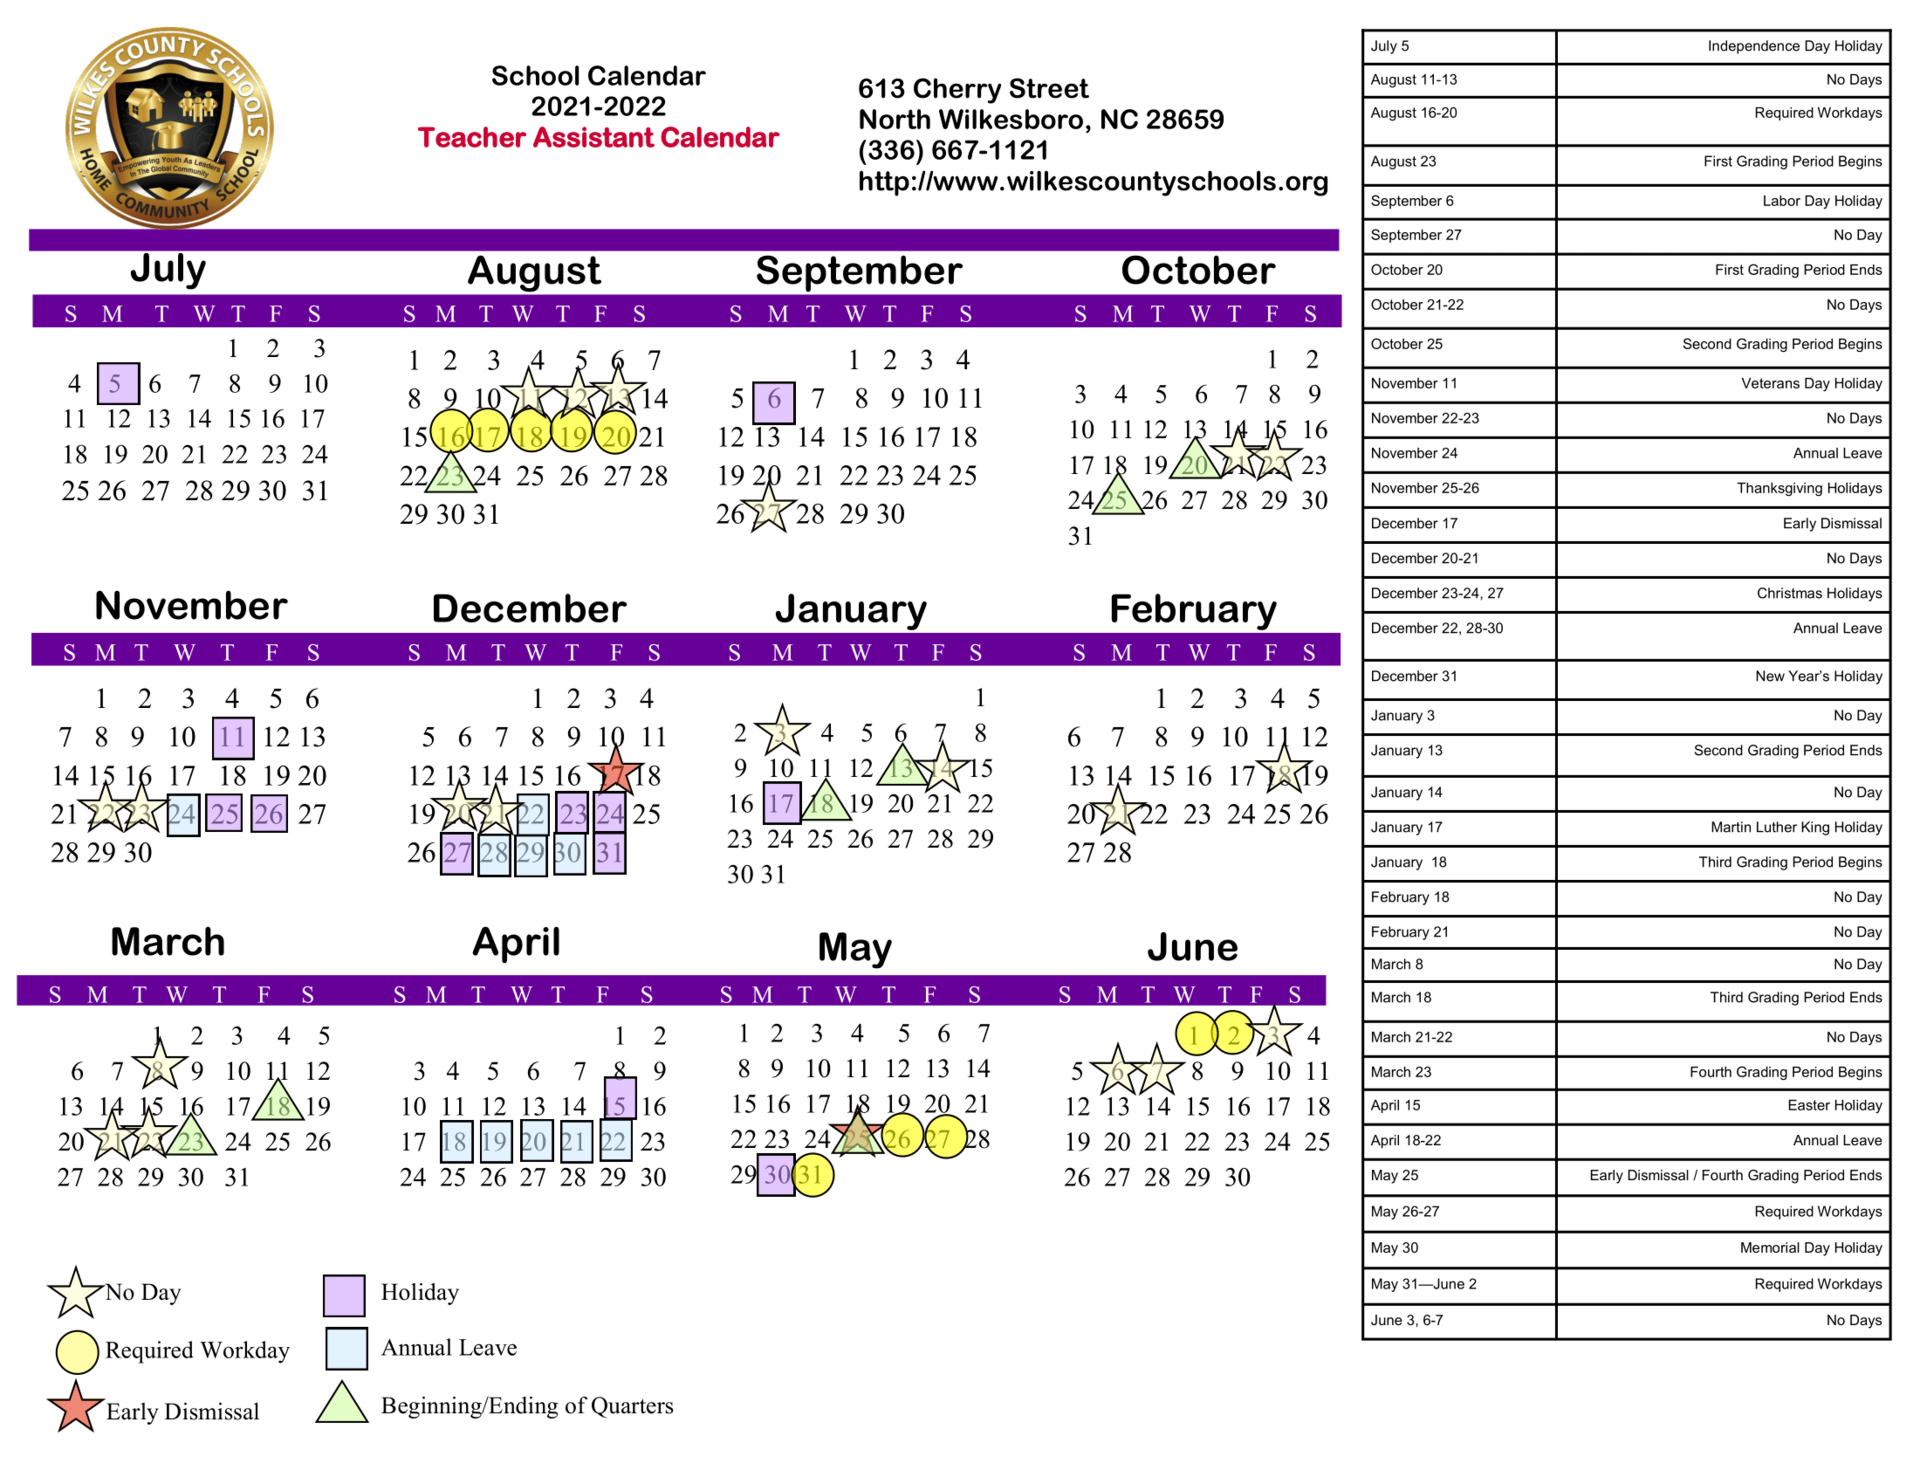 2021-2022 Teacher Assistant Calendar (for the upcoming school year)